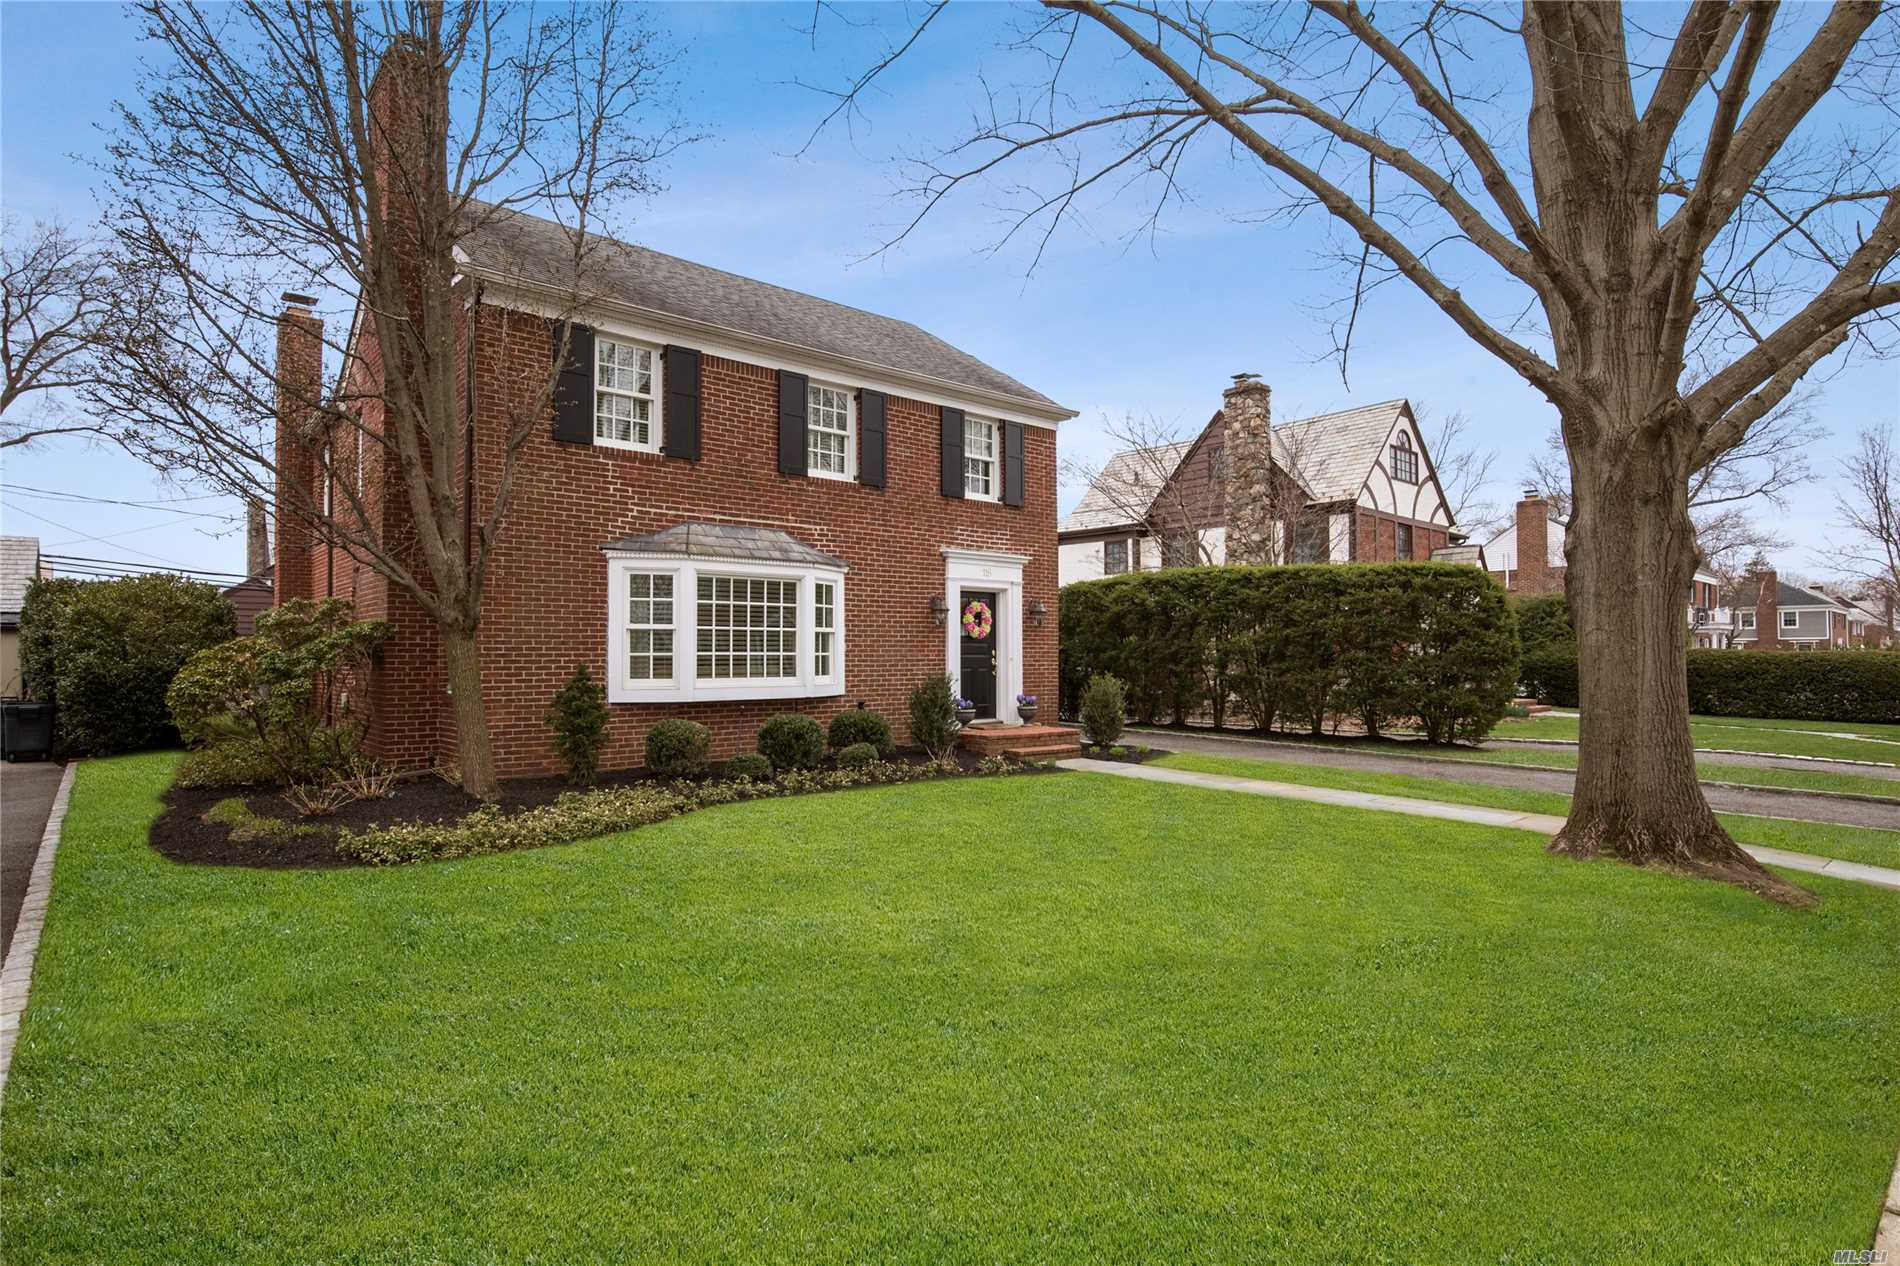 Welcome to this inviting 4 bedroom, 2.5 bath brick colonial w/attached garage in the heart of the Estates. Situated on 60 x 110 prop. Master suite complete with large bdrm, luxurious bathroom and his/her walk in closets.  This property offers a stunning kitchen/ great room w/ FP, formal dining room, Formal LR with wood burning FP as well as spectacular outdoor living space complete with abundance of privacy. Add'l features: CAC, Alarm, Bose ent system, IGS, near to LIRR, Parks and schools